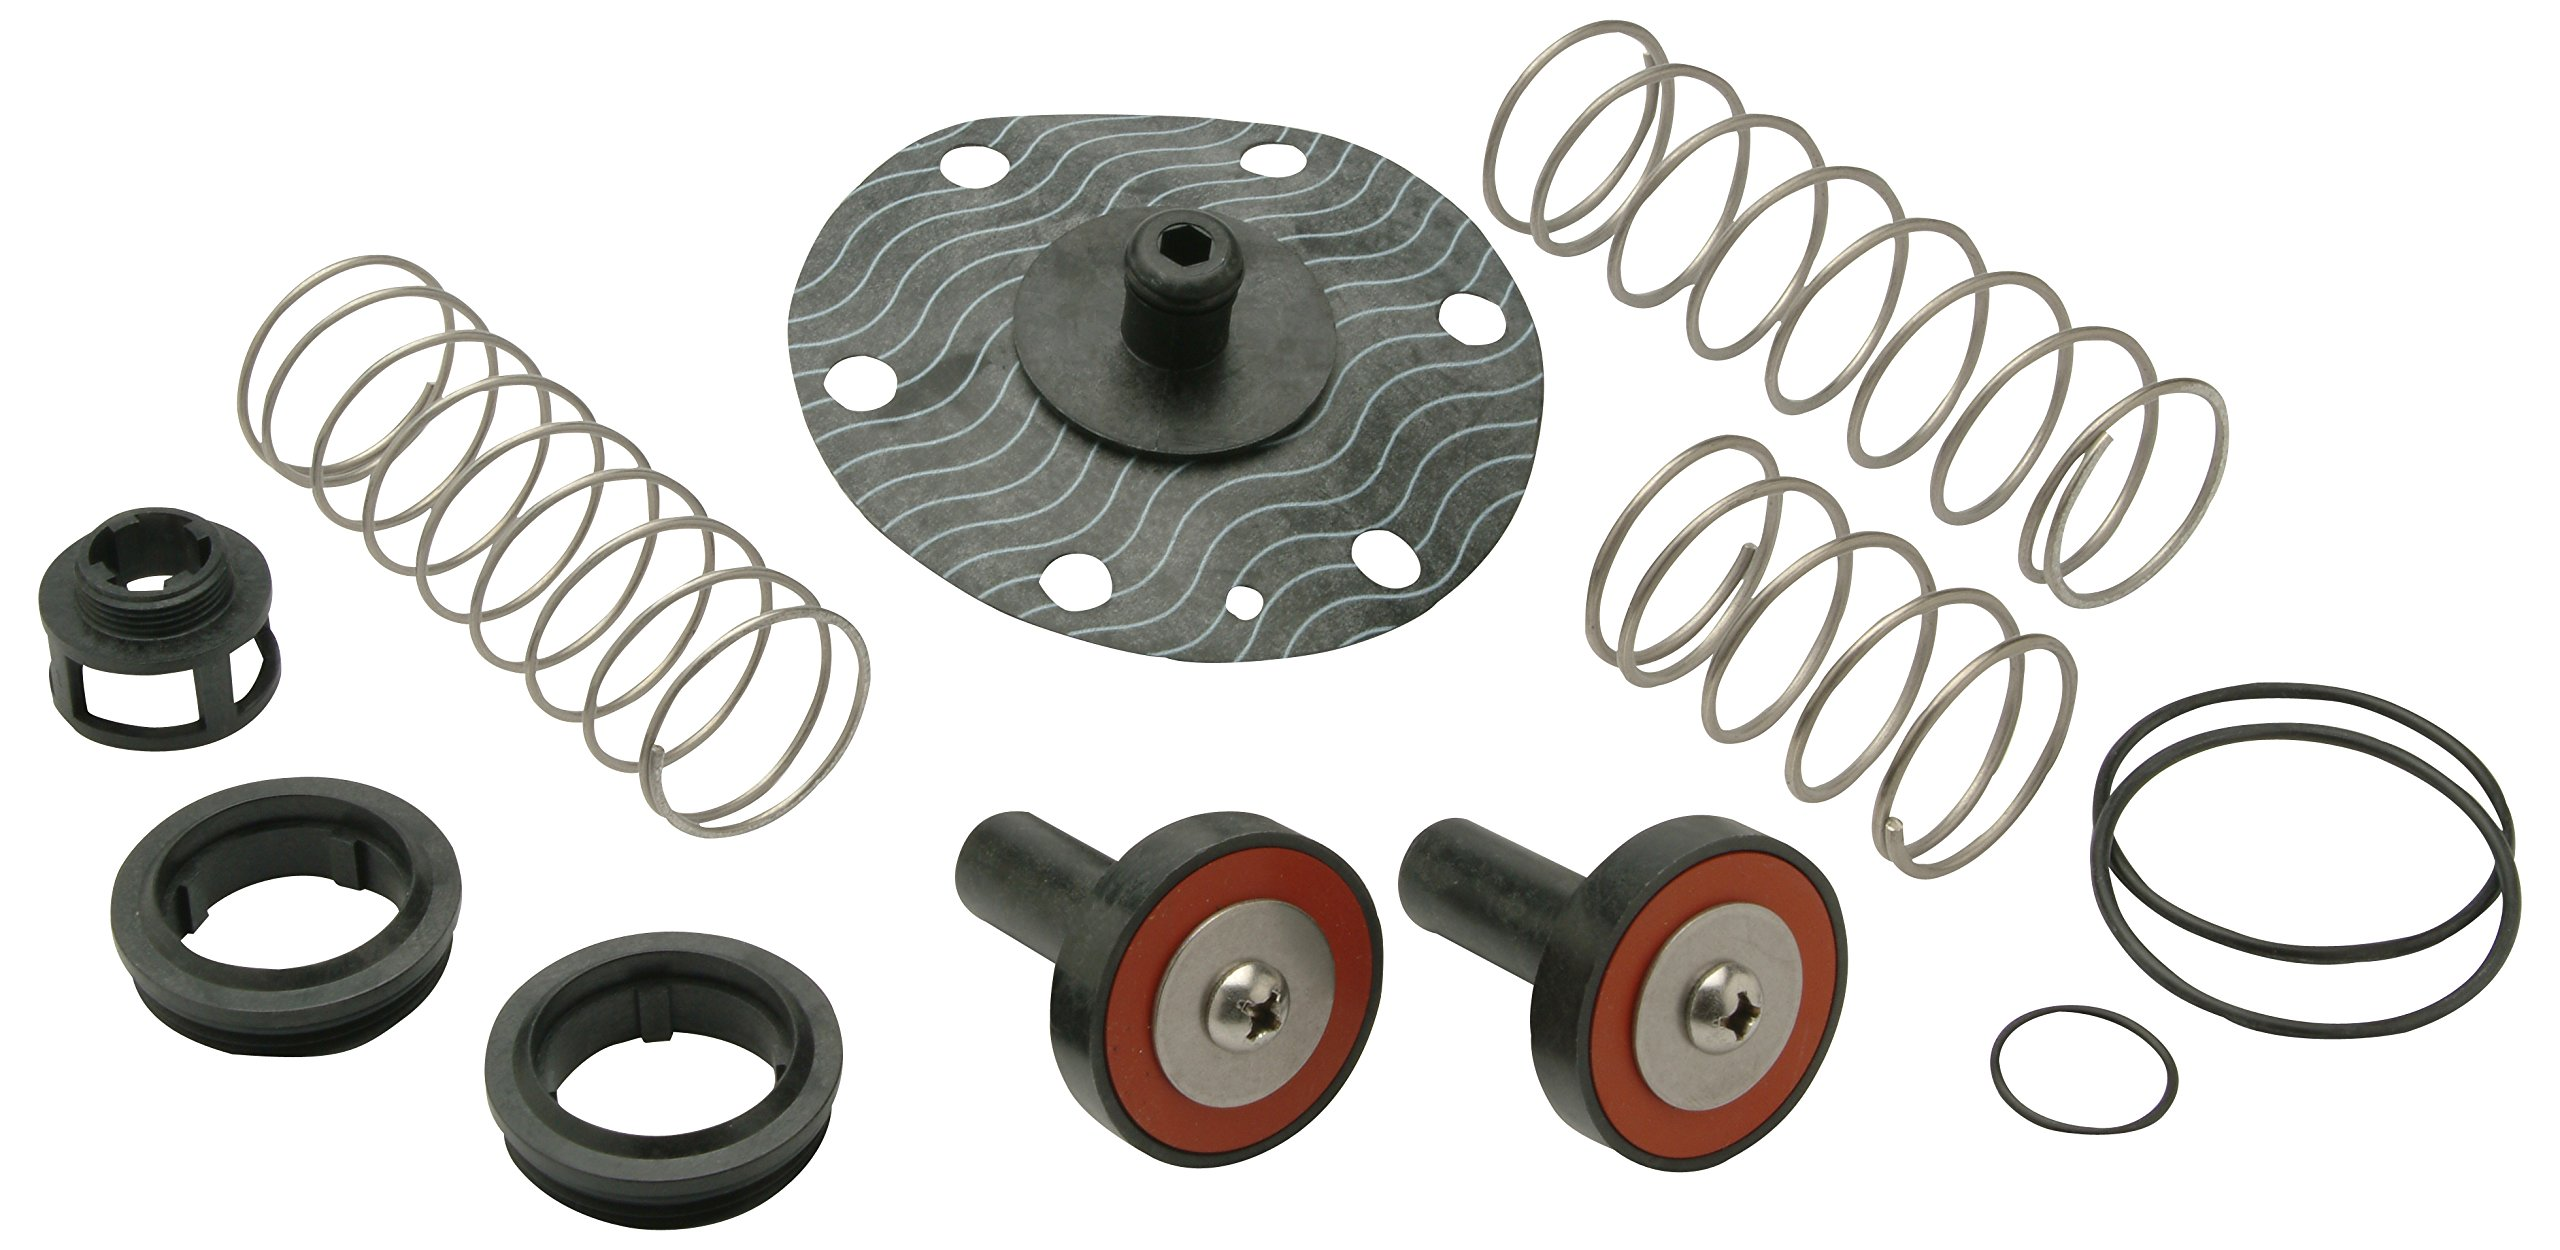 Zurn RK34-975XLC Wilkins Complete Repair Kit for Models 975XL/975XL2, 0.75'' to 1'' Sizes and for 3/4'' to 1'' Backflow Preventer